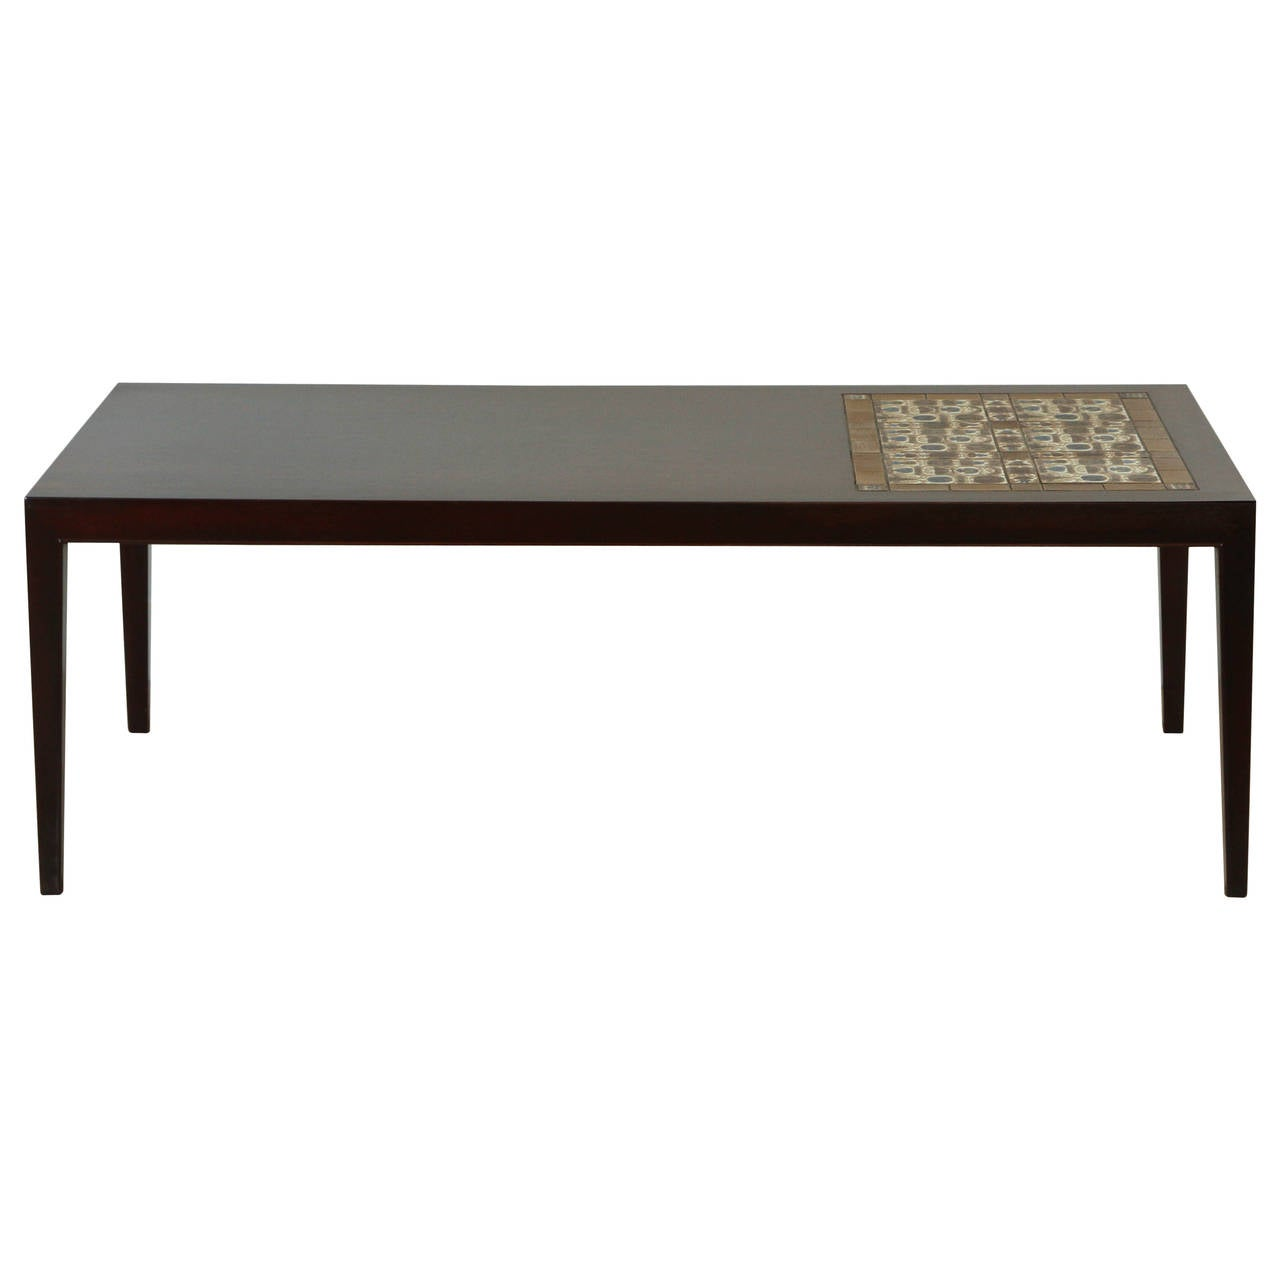 danish rosewood and mosaic tile top coffee table by